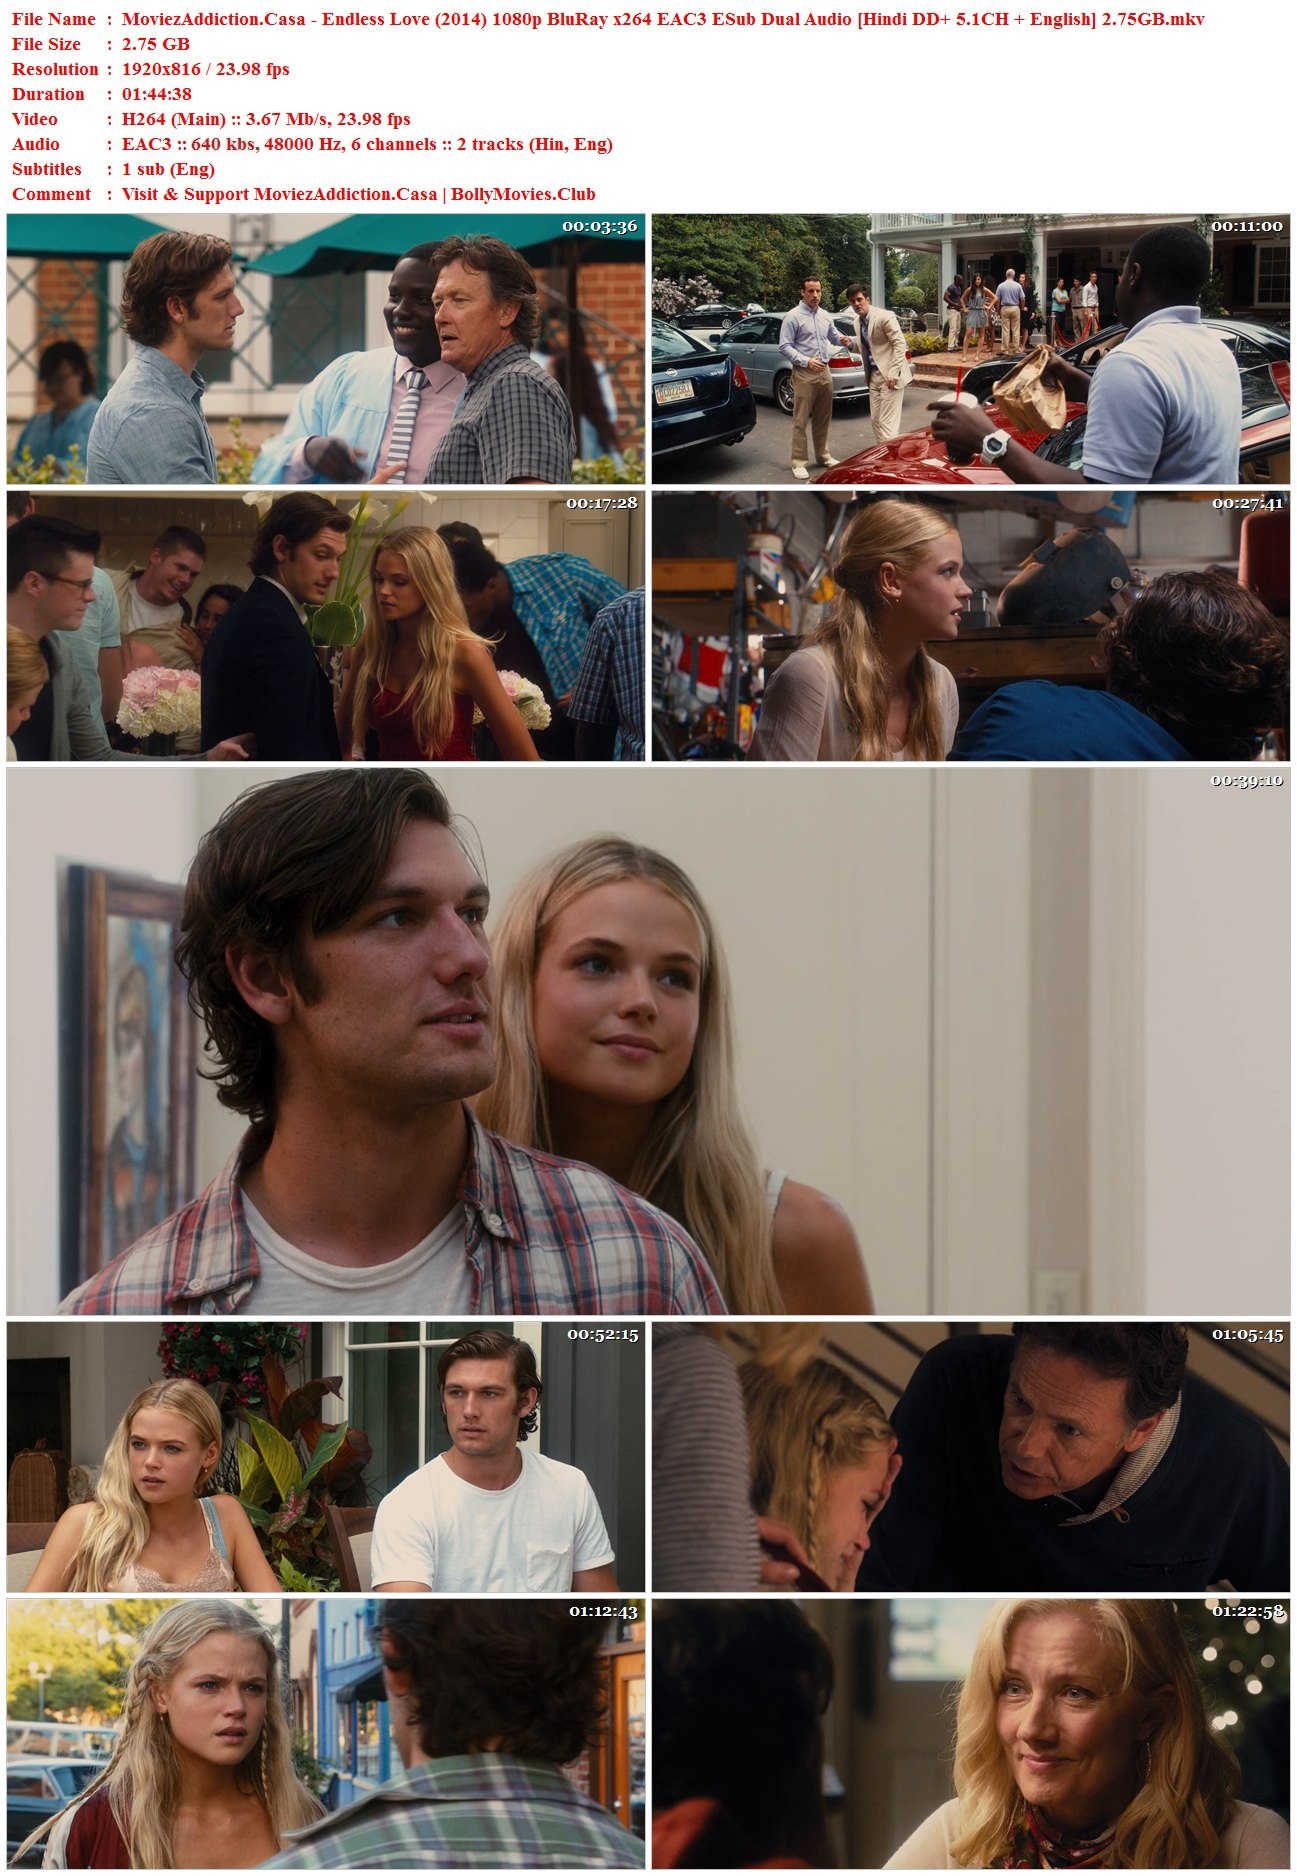 Download Endless Love